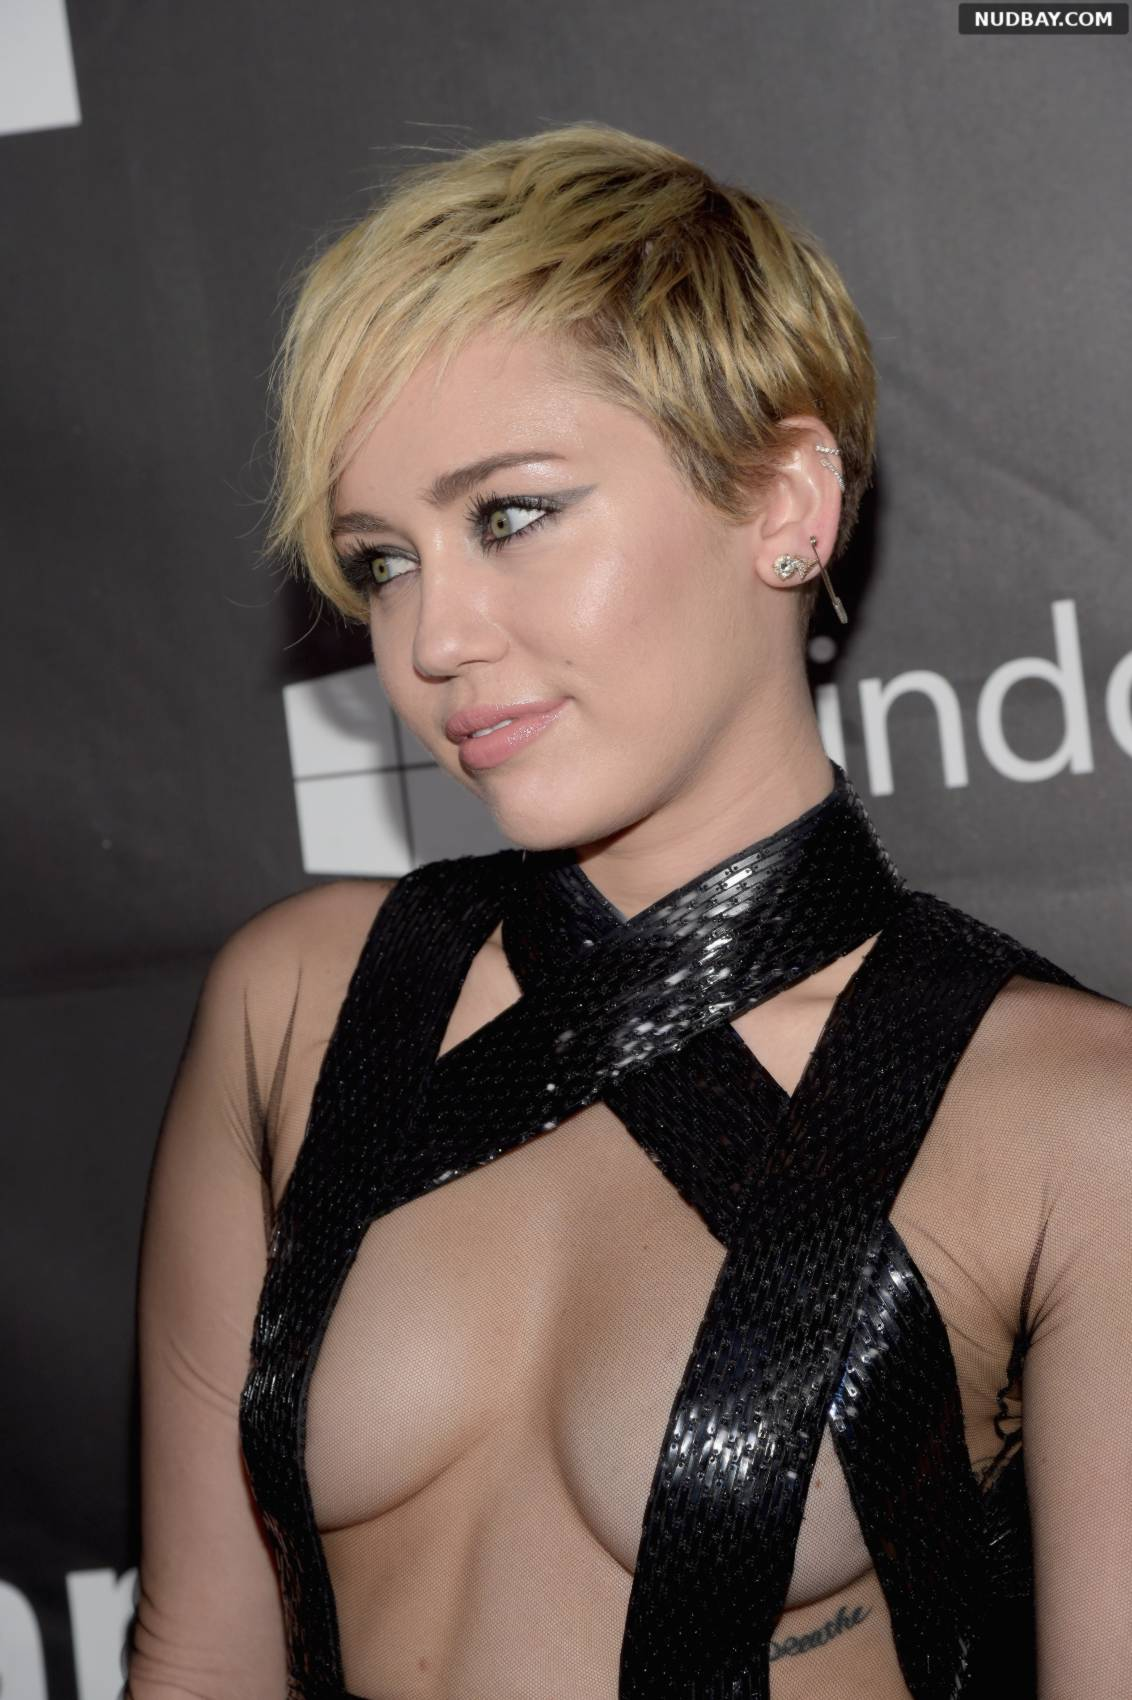 Miley Cyrus attends the 2014 amfAR LA Inspiration Gala at Milk Studios on October 29, 2014 in Hollywood